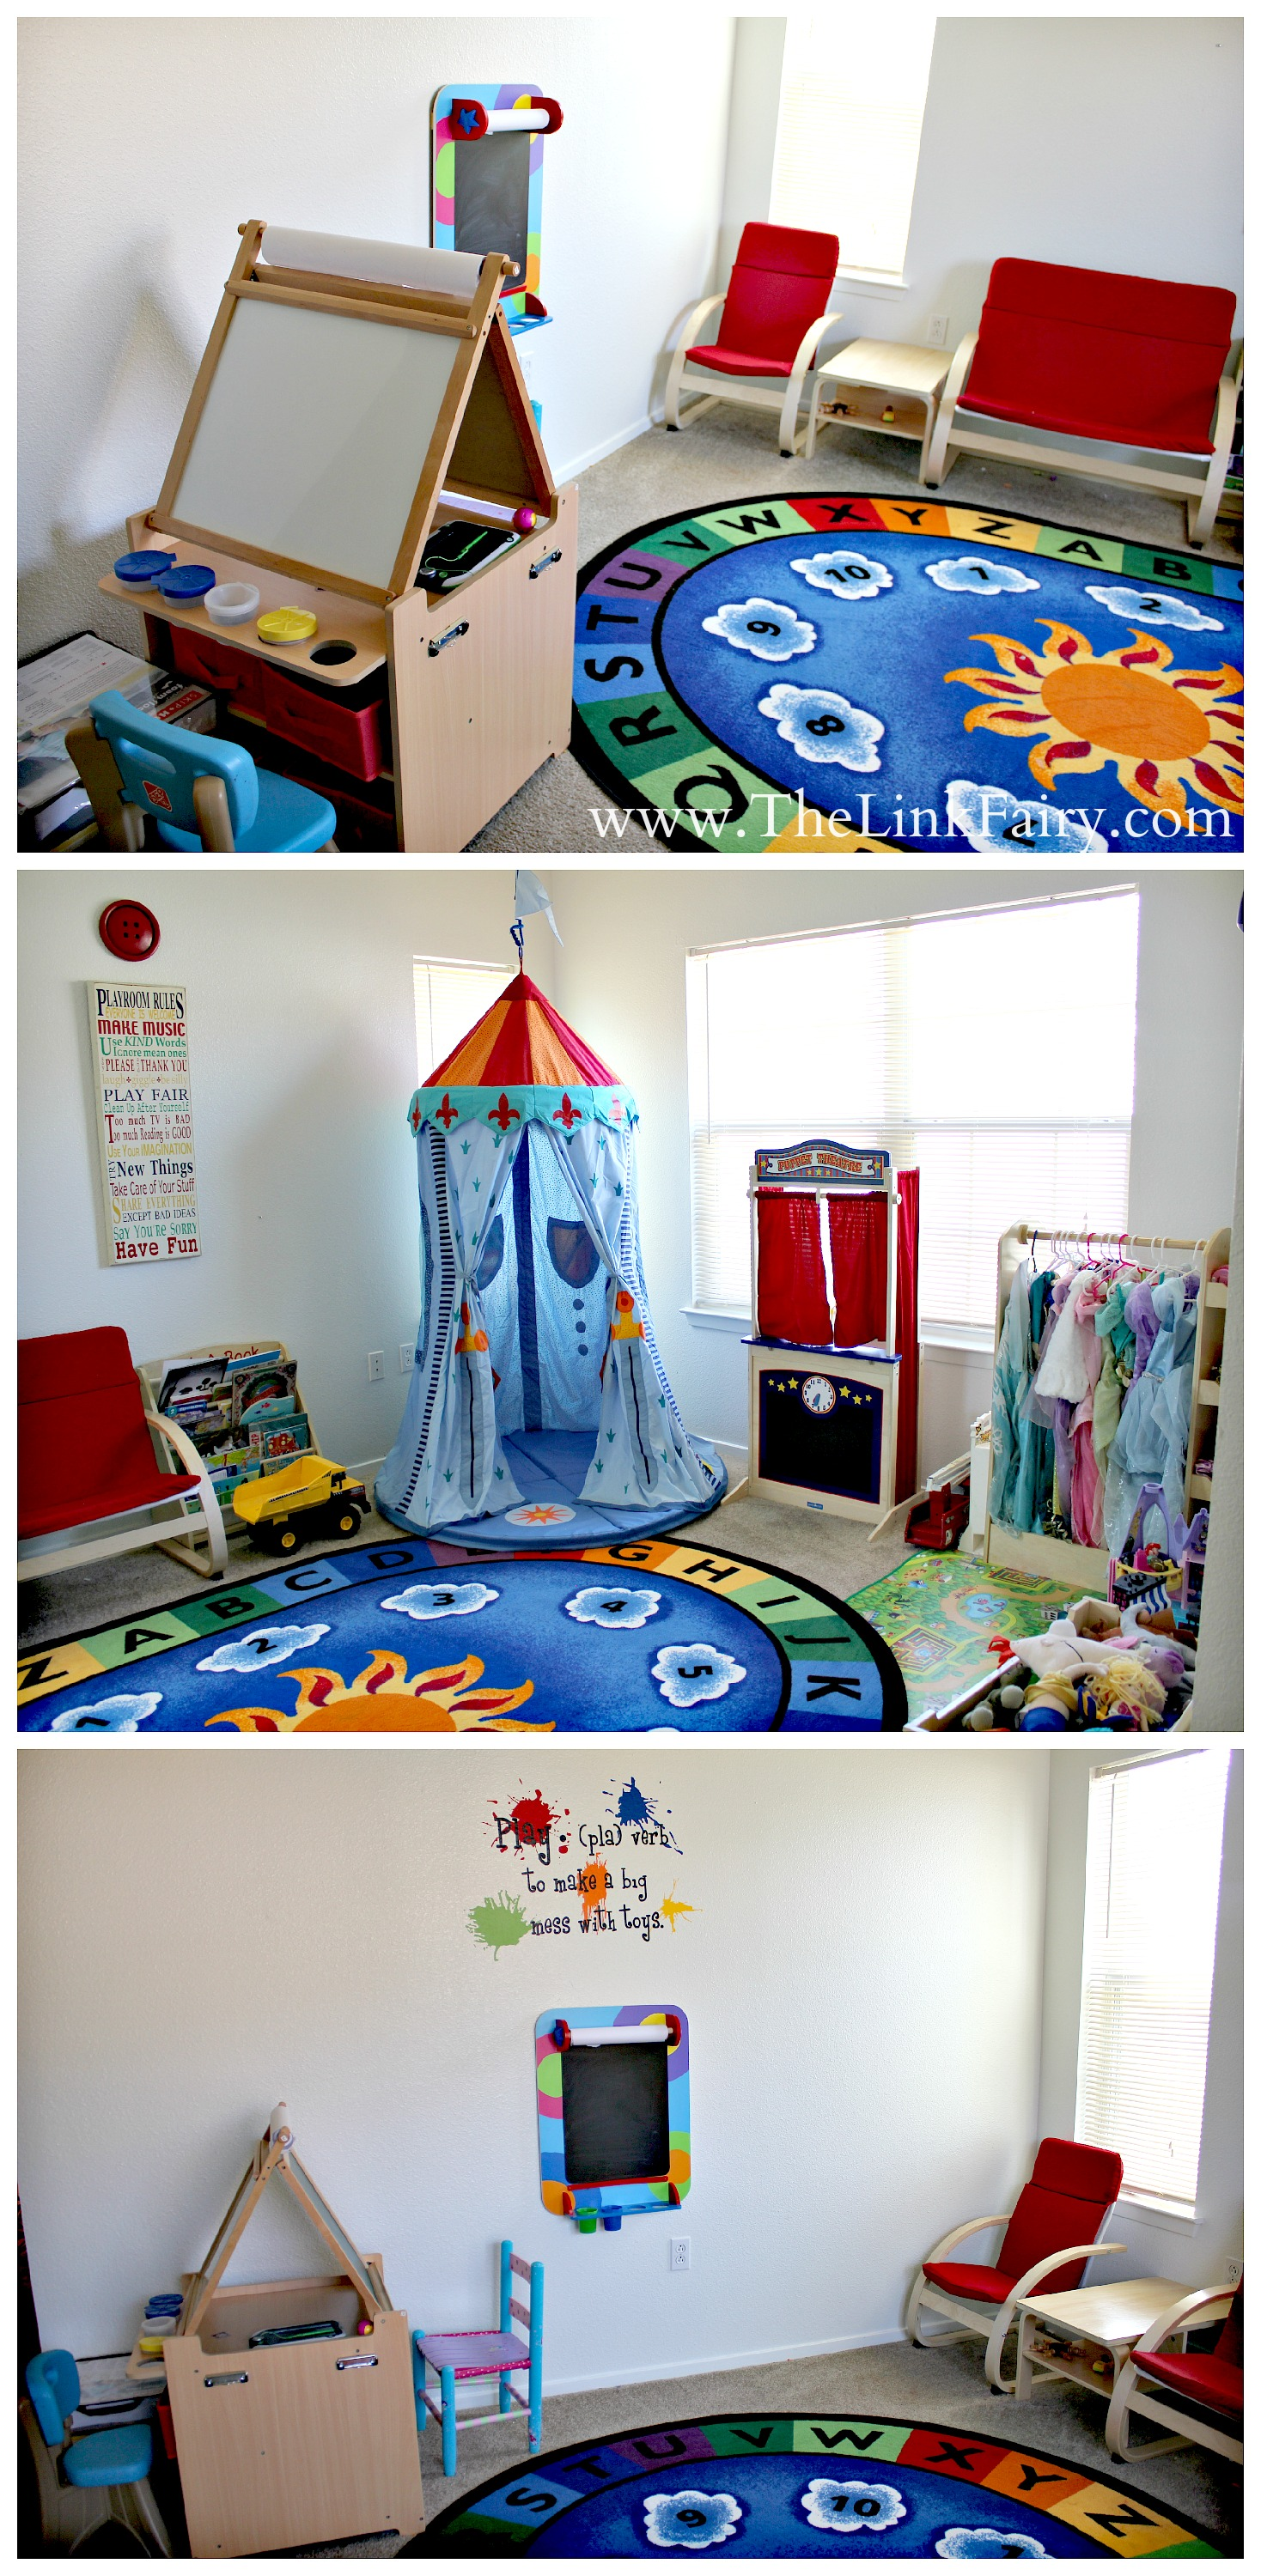 How To Design The Perfect Playroom For Your Kids: On A Mission: Creating The Perfect Play Room